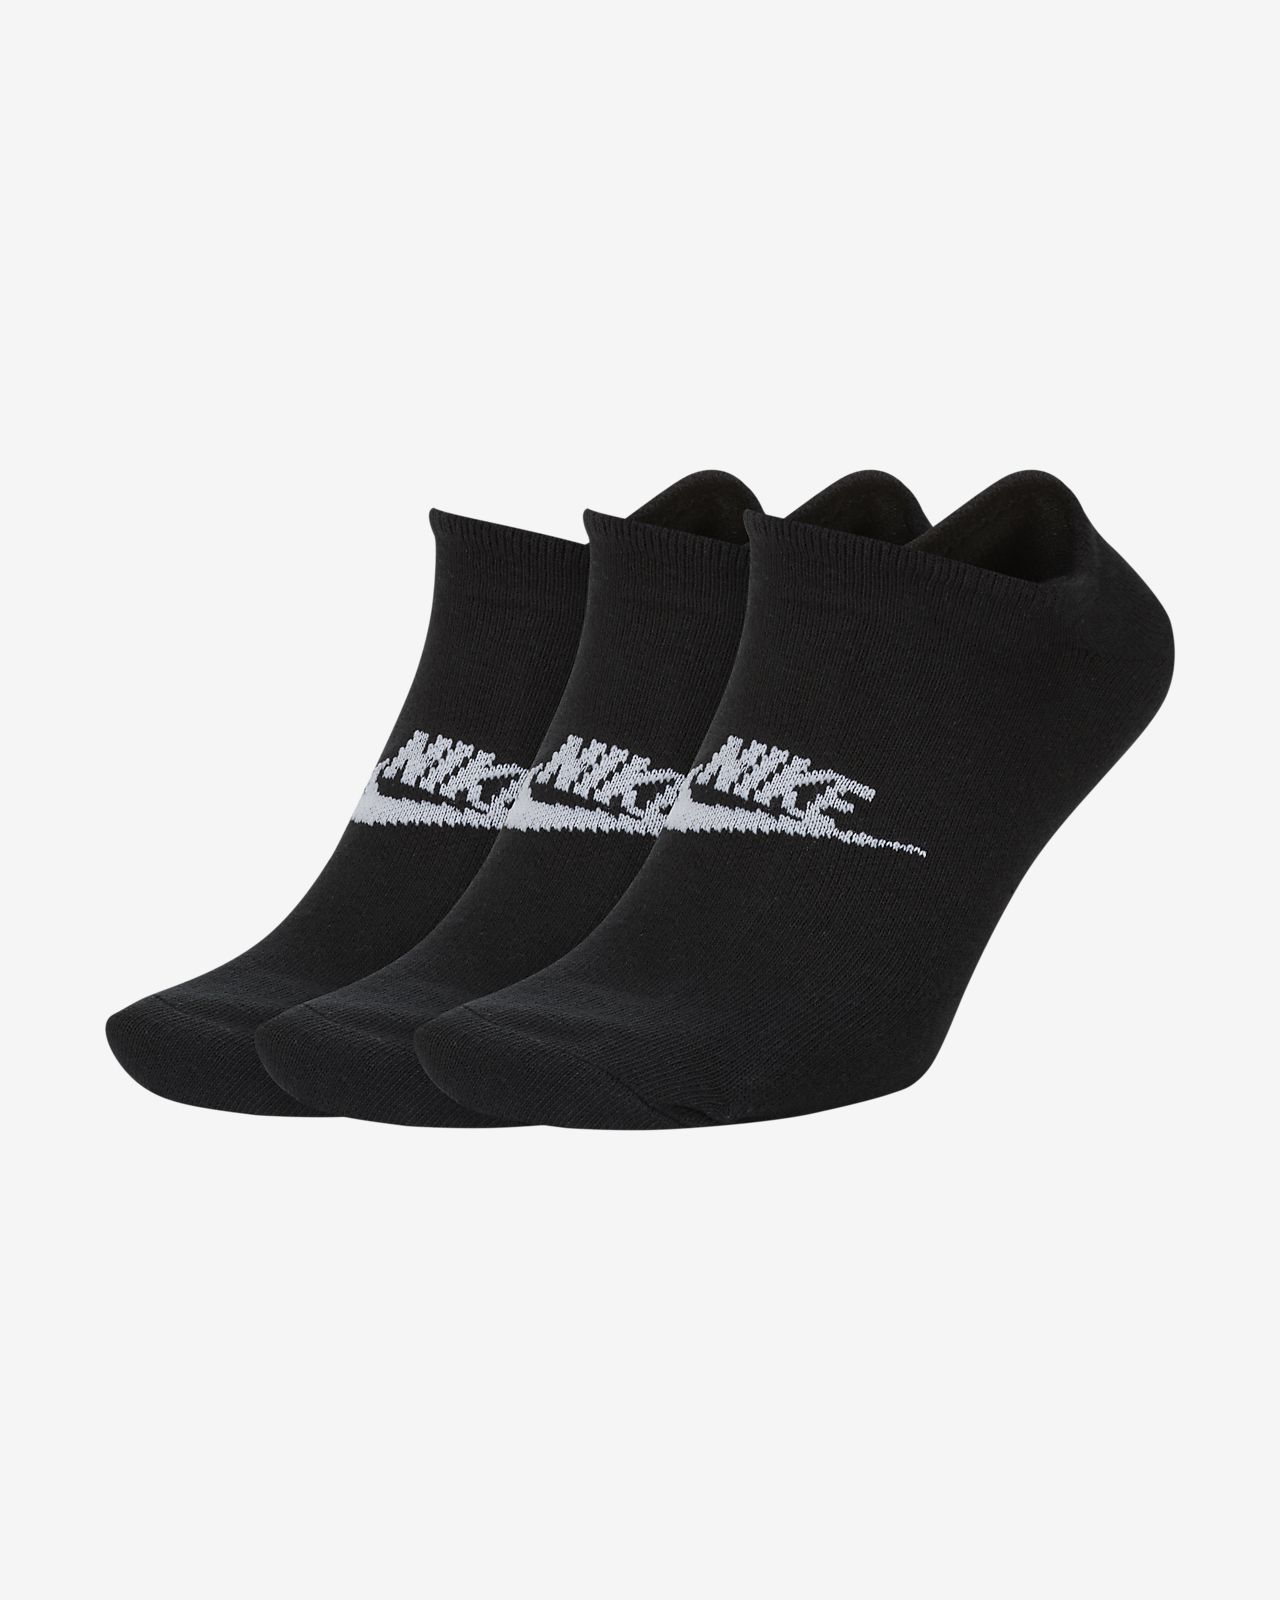 Calcetines invisibles Nike Sportswear Everyday Essential (3 pares)